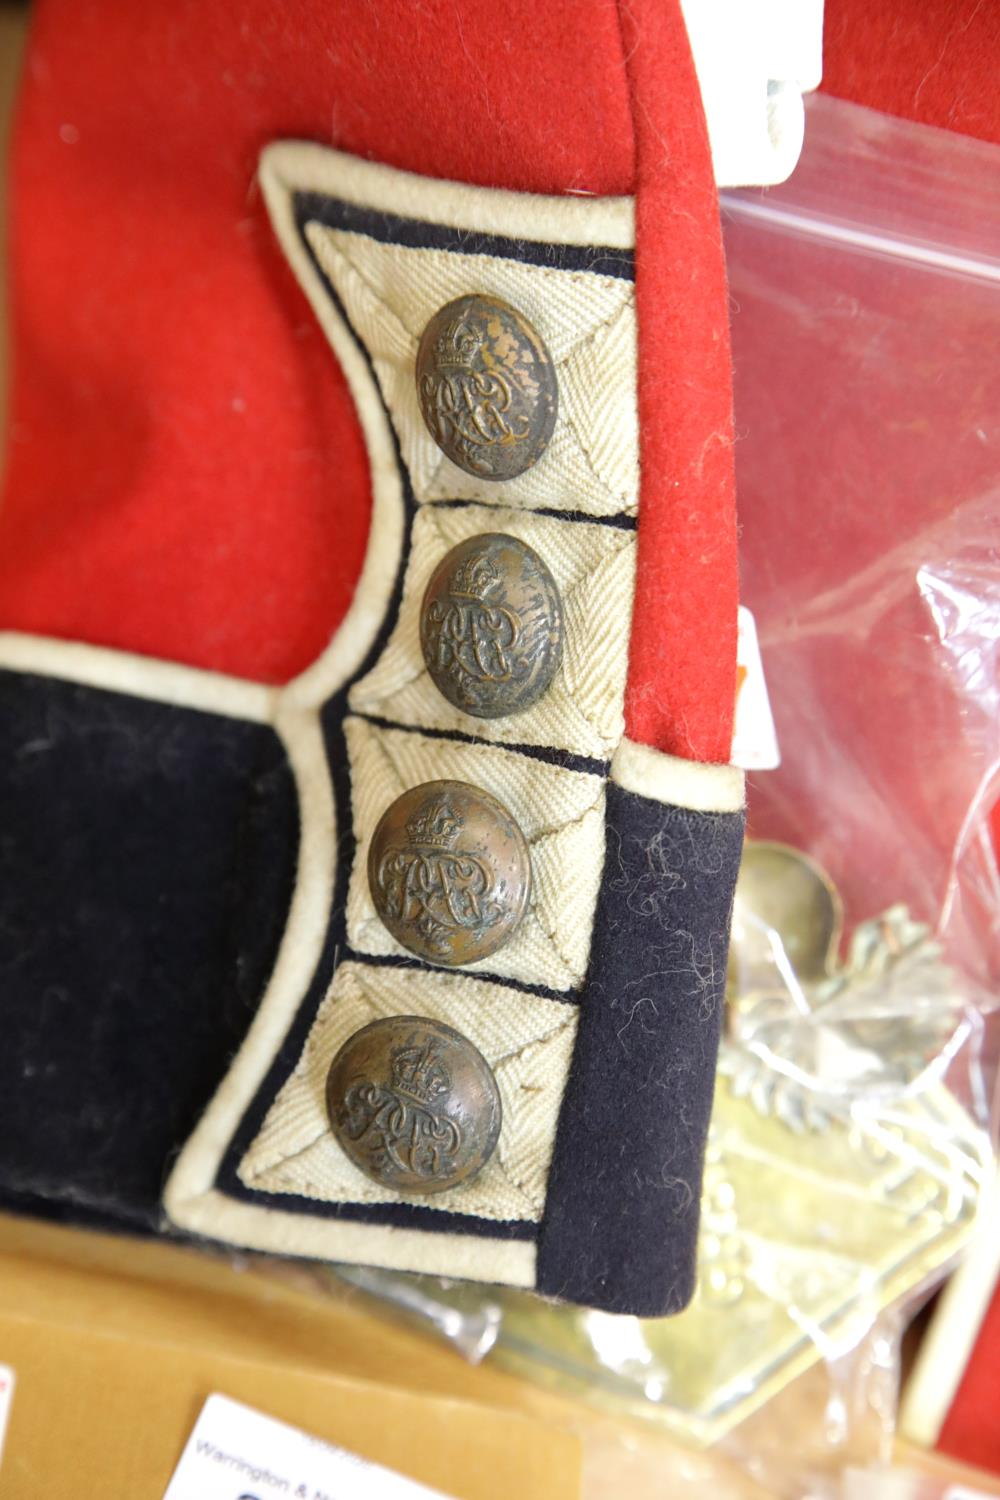 George V Grenadier Guards dress tunic with white belt lacking buckle, additional brass badges and - Image 5 of 5